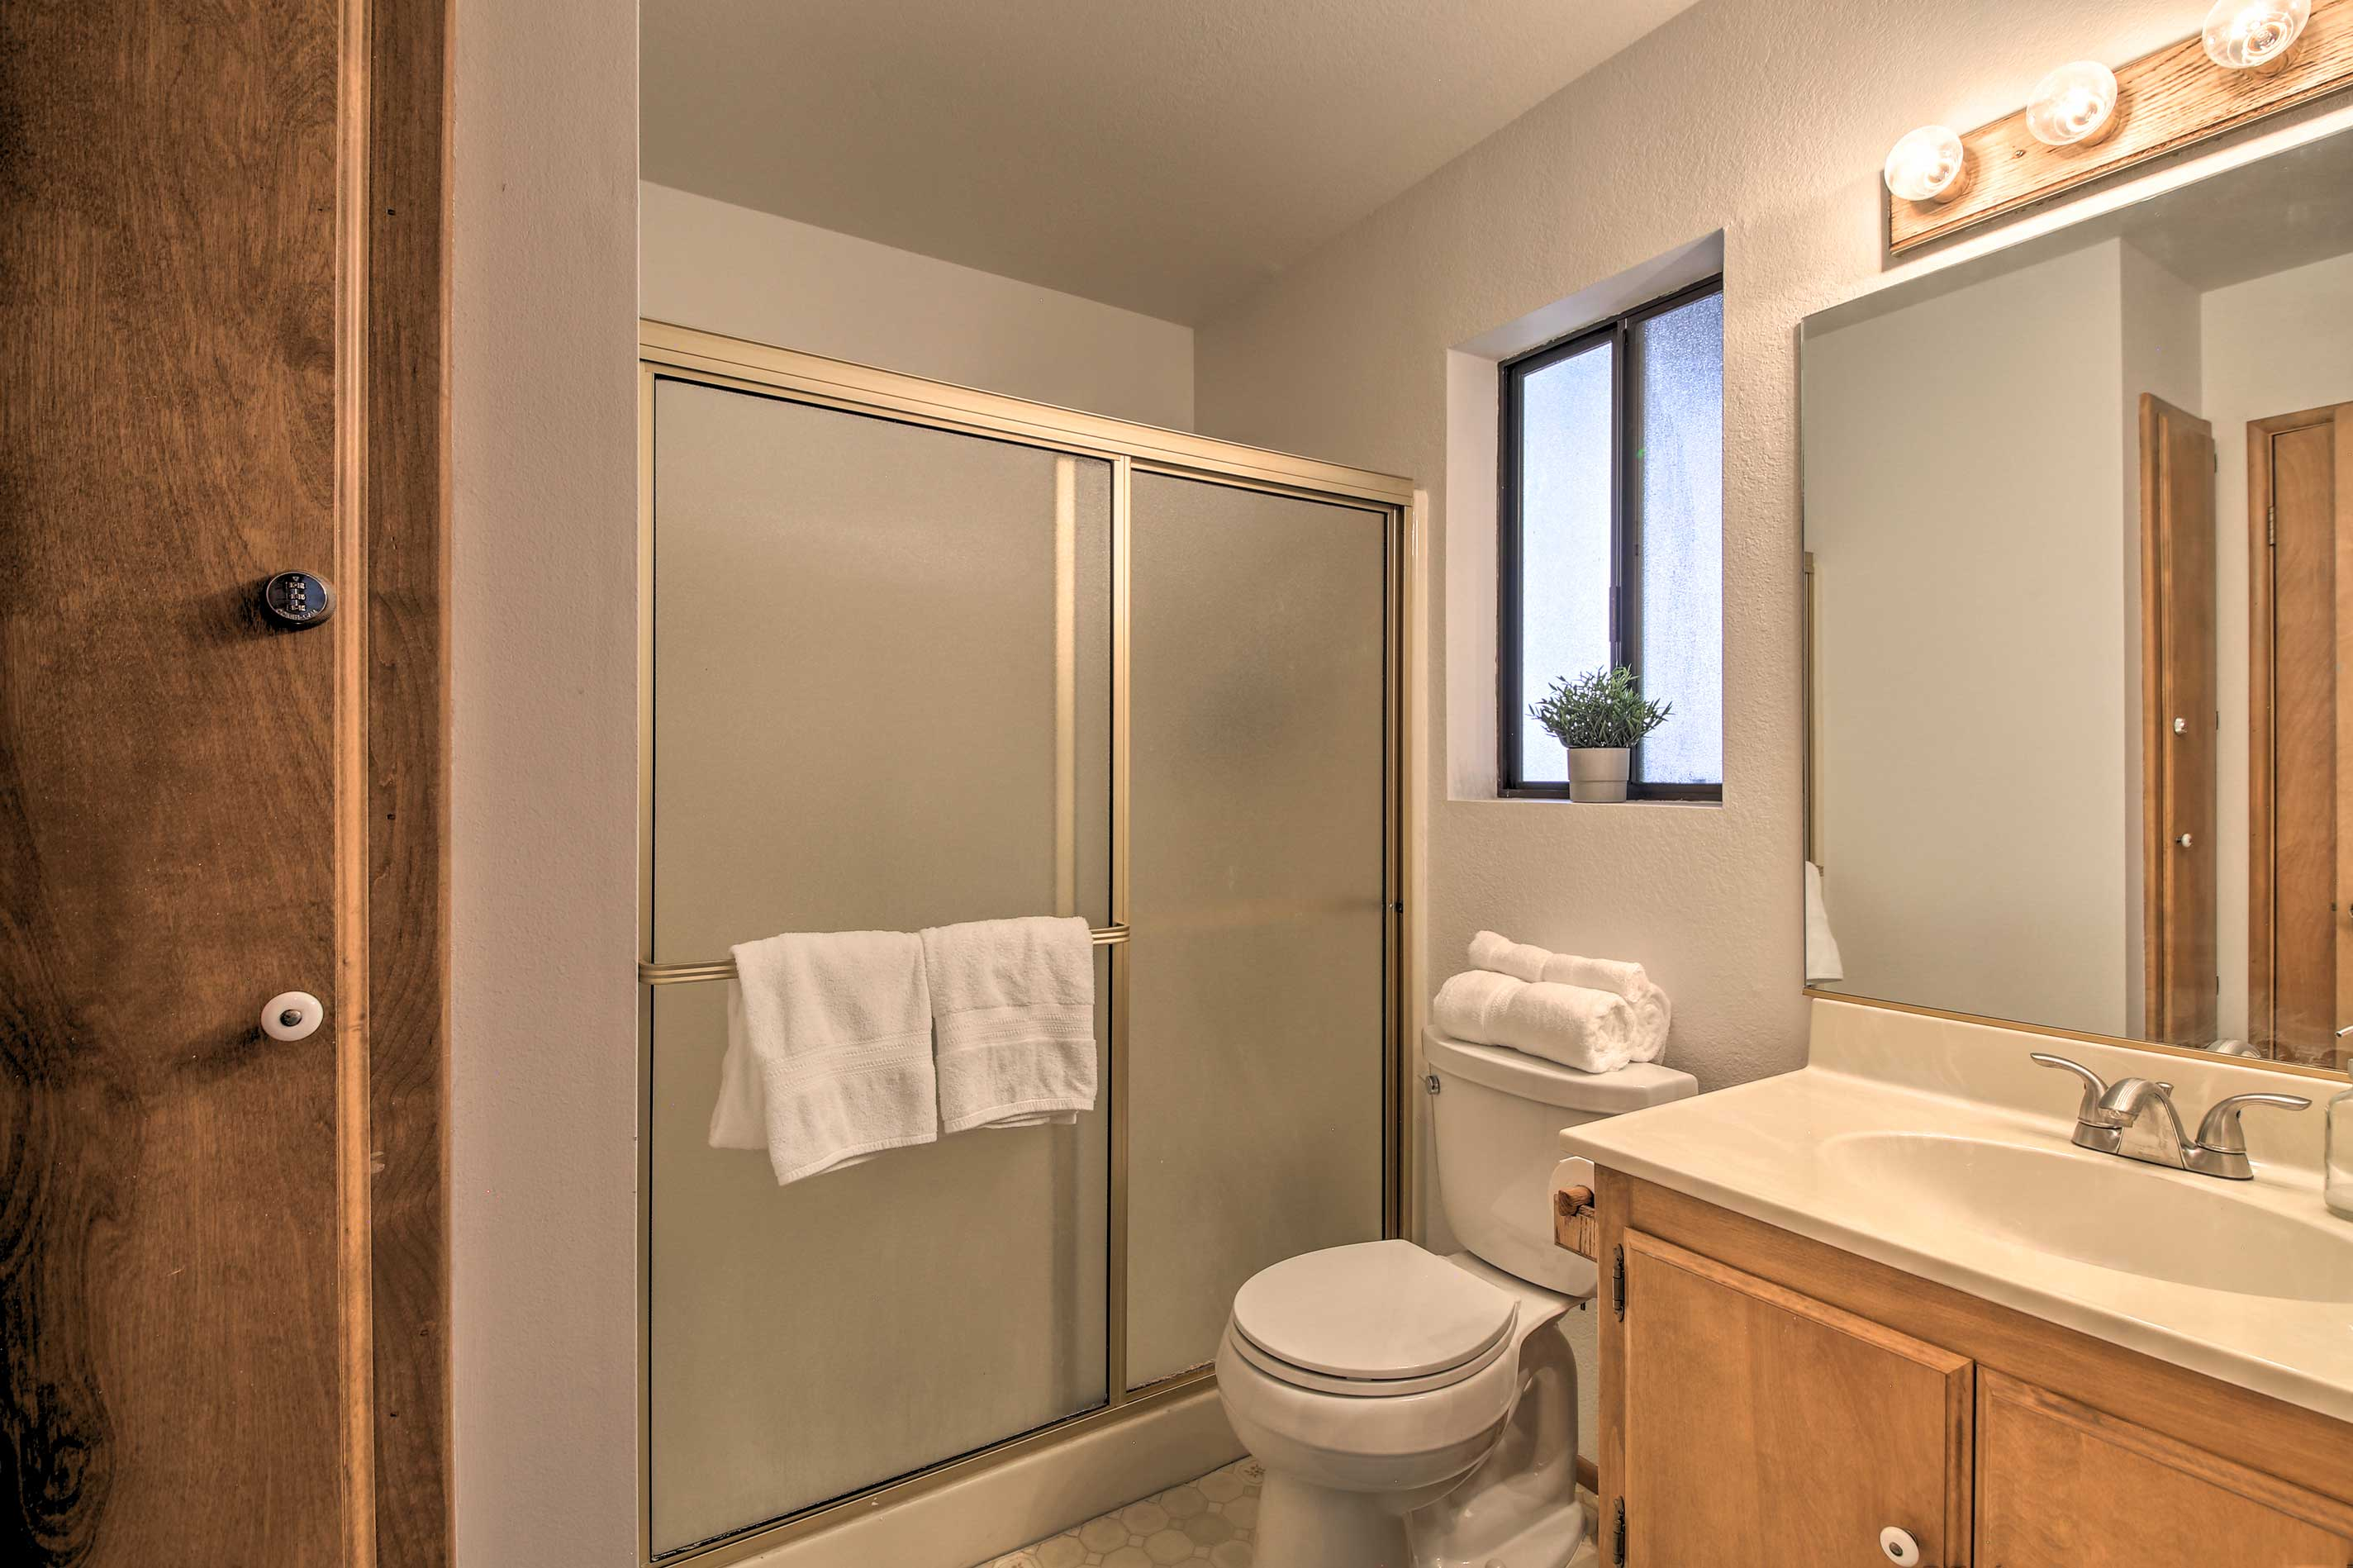 This cabin features a total of 2.5 bathrooms.